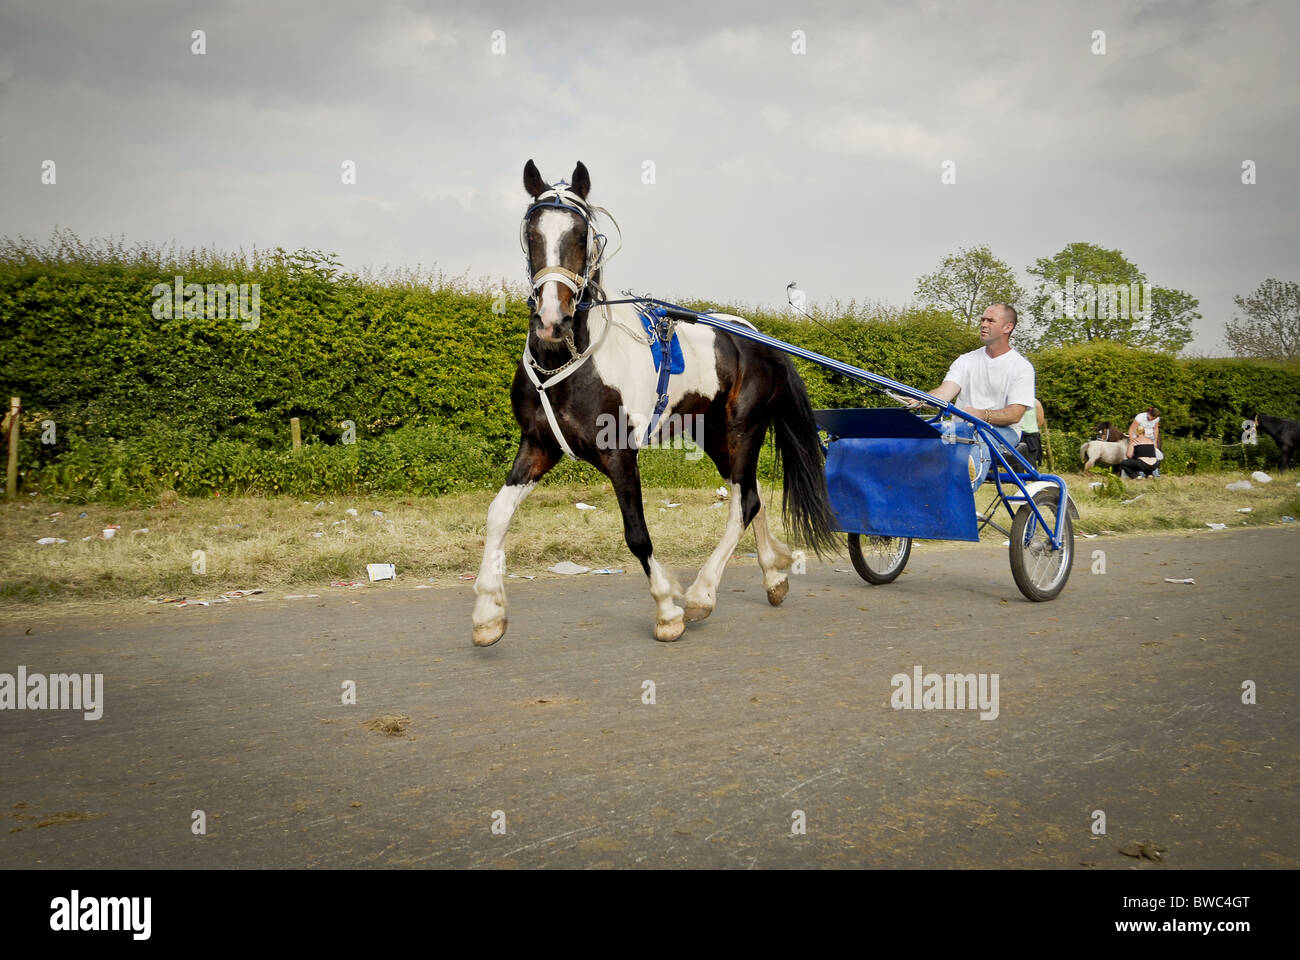 Appleby Horse fair Westmorland, Cumbria, UK - Stock Image